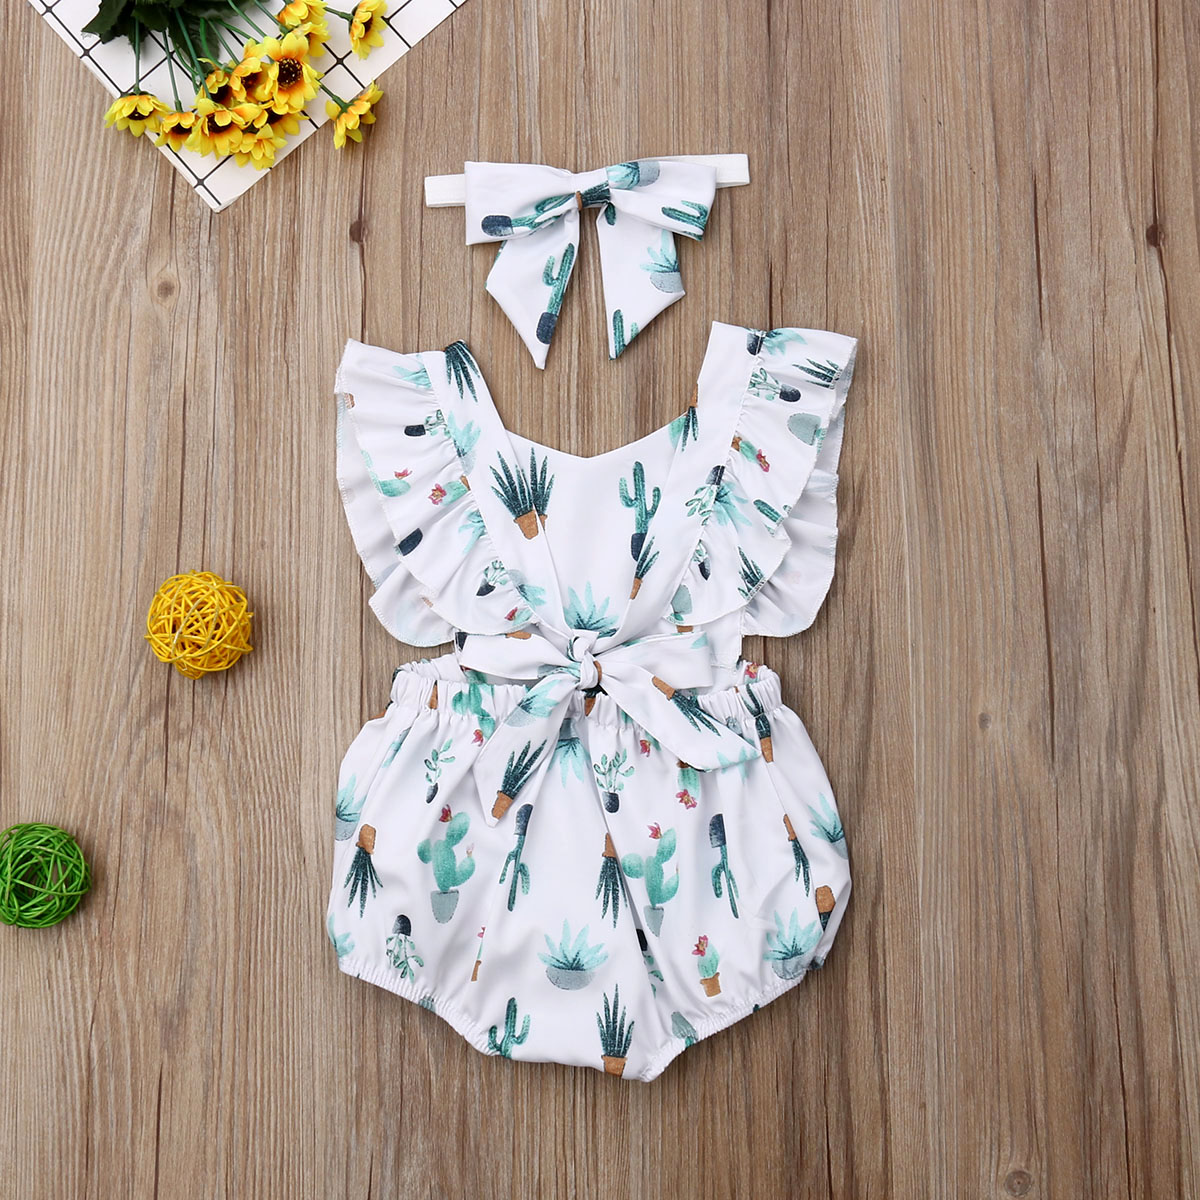 For Newborn Baby Girl Bodysuit Jumpsuit + Headband 2pieces Set